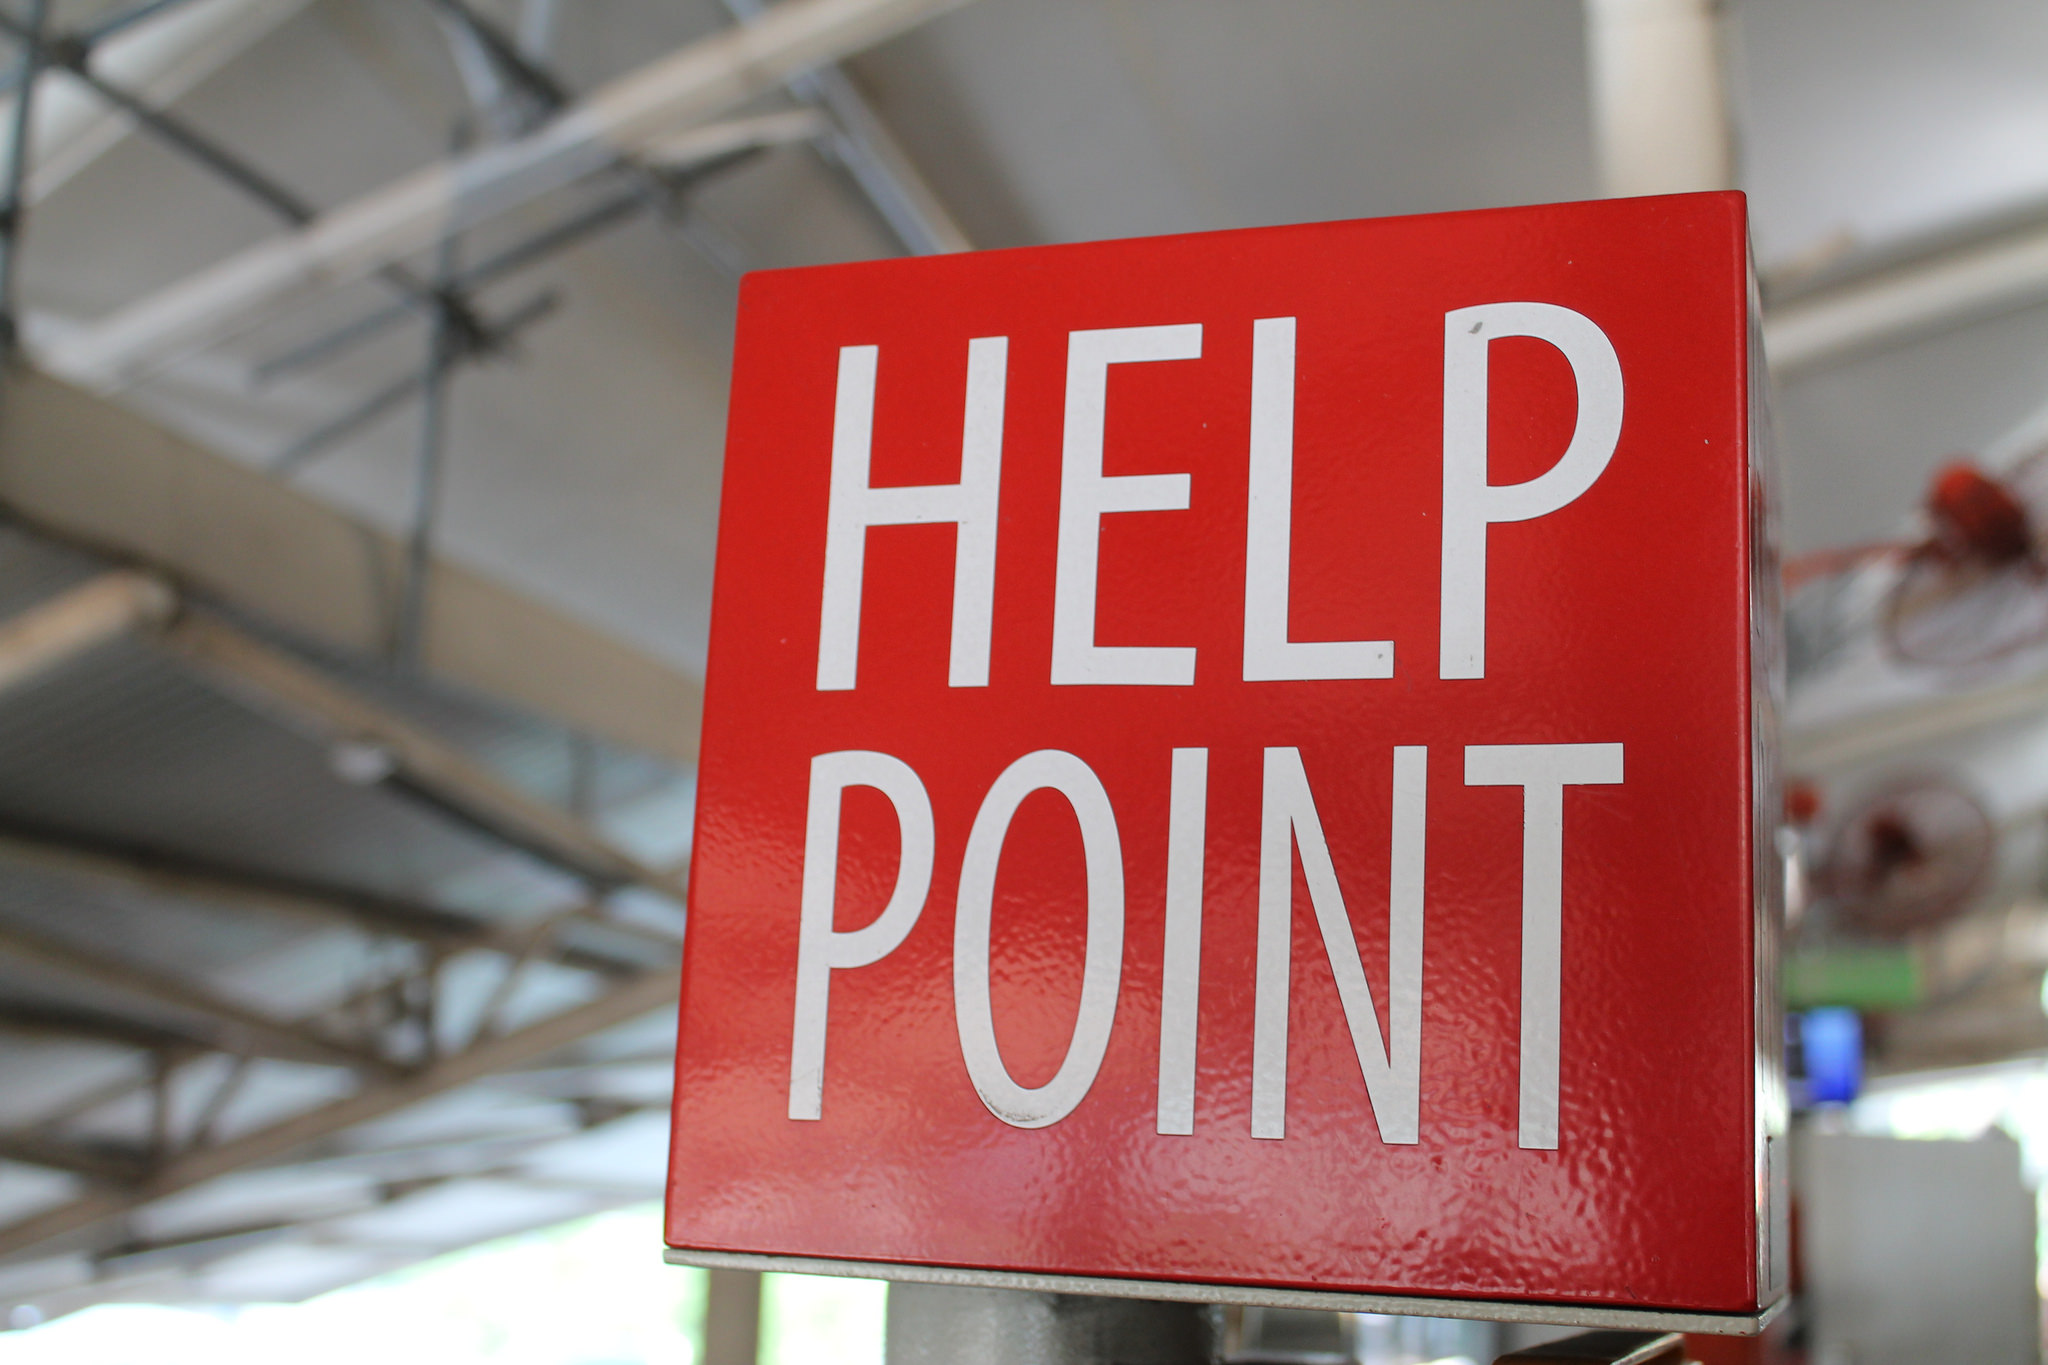 """Help Point"" by Aron Elal (source Flickr)"